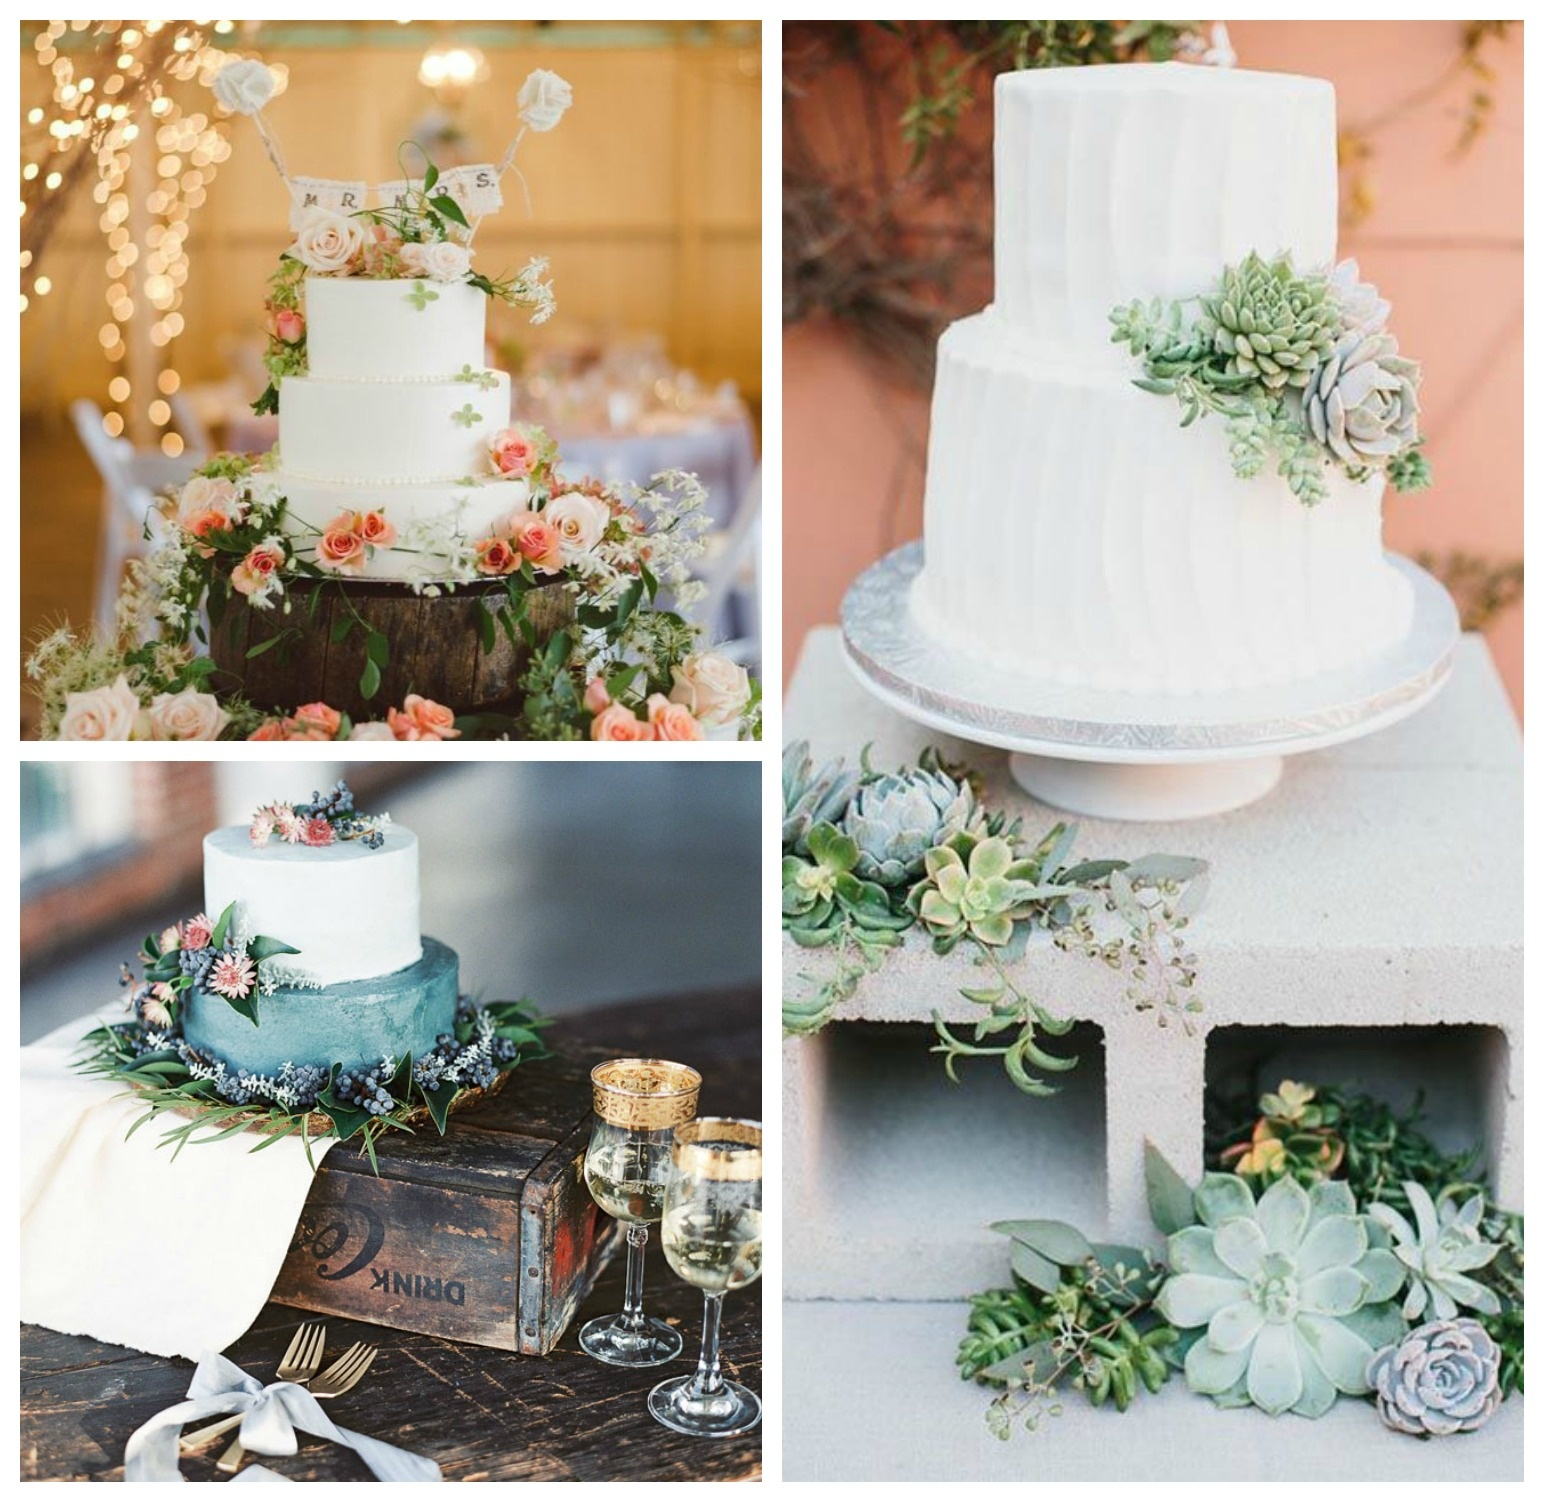 decoration ideas for wedding cake table spruce up your cake table our favorite ideas for wedding 13431